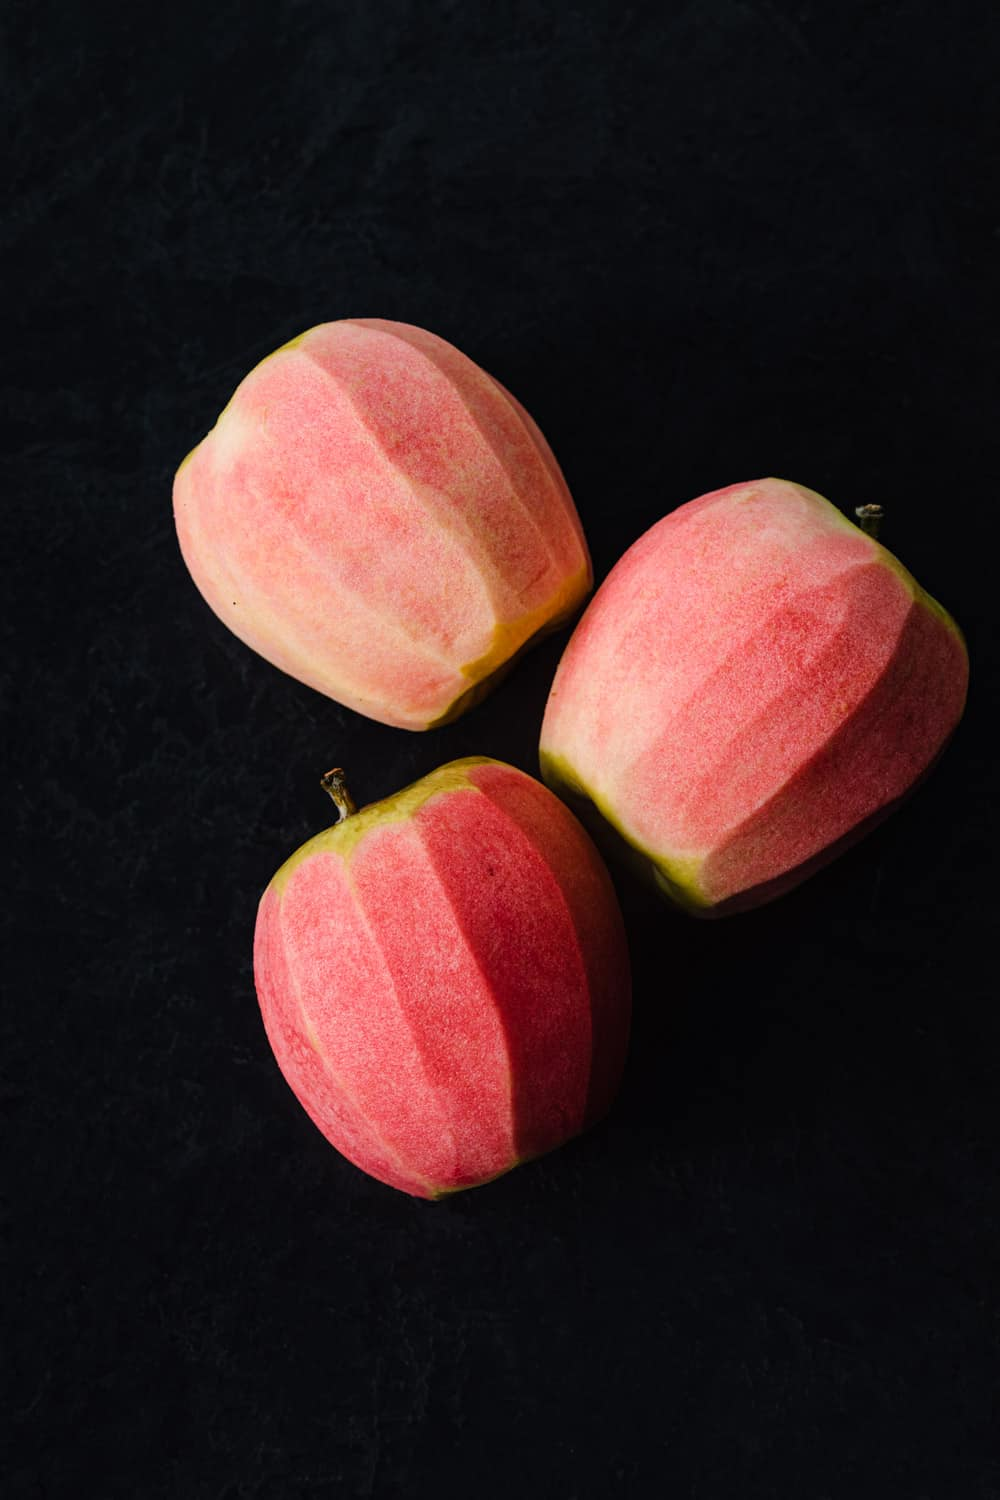 Hidden Rose apples, whole and peeled, revealing their pink flesh! Balck background, overhead shot.